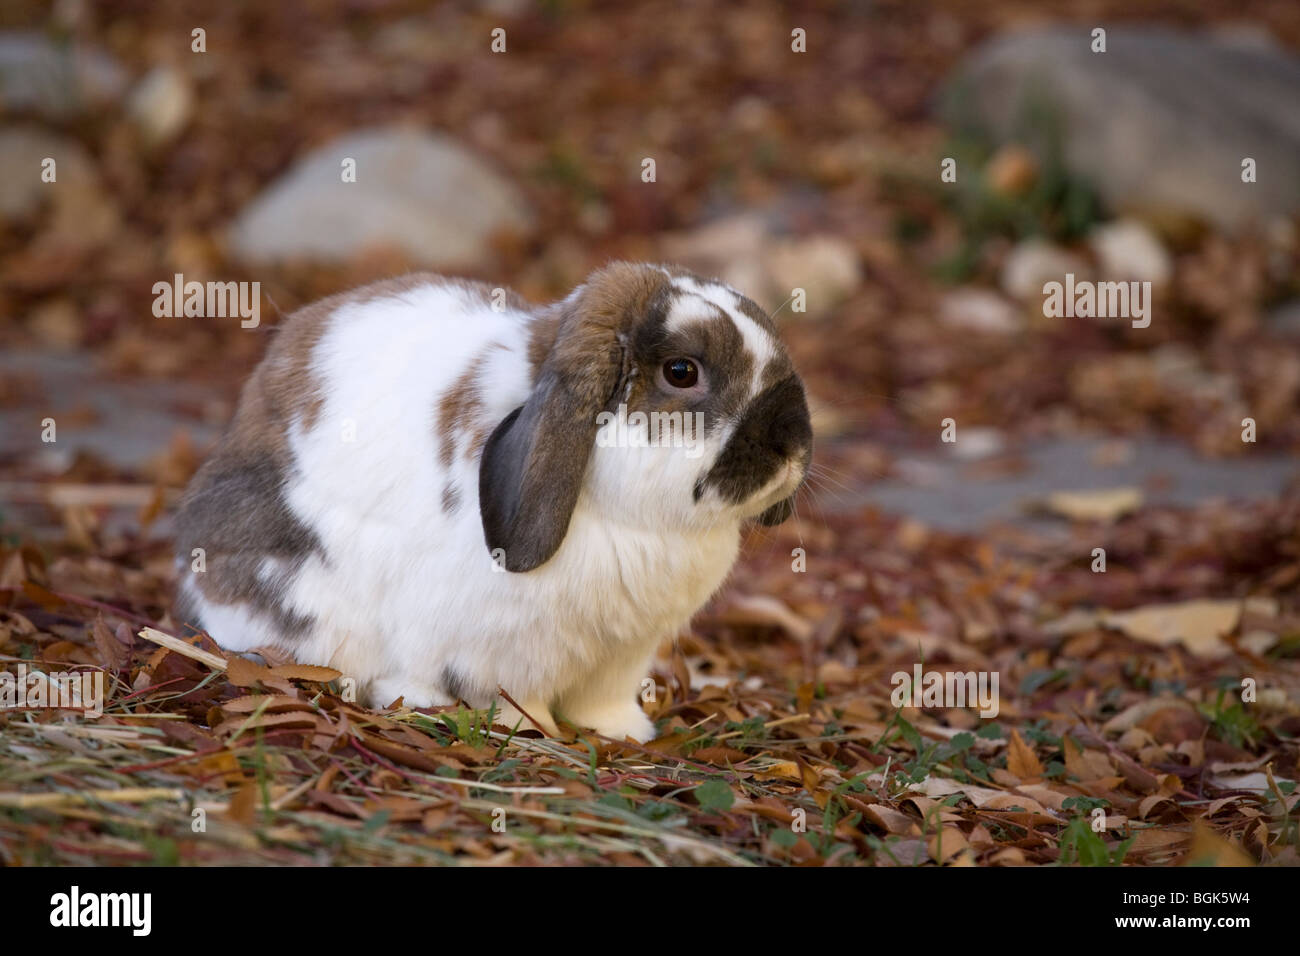 Holland Lop pet dwarf rabbit outdoors in yard in autumn Stock Photo